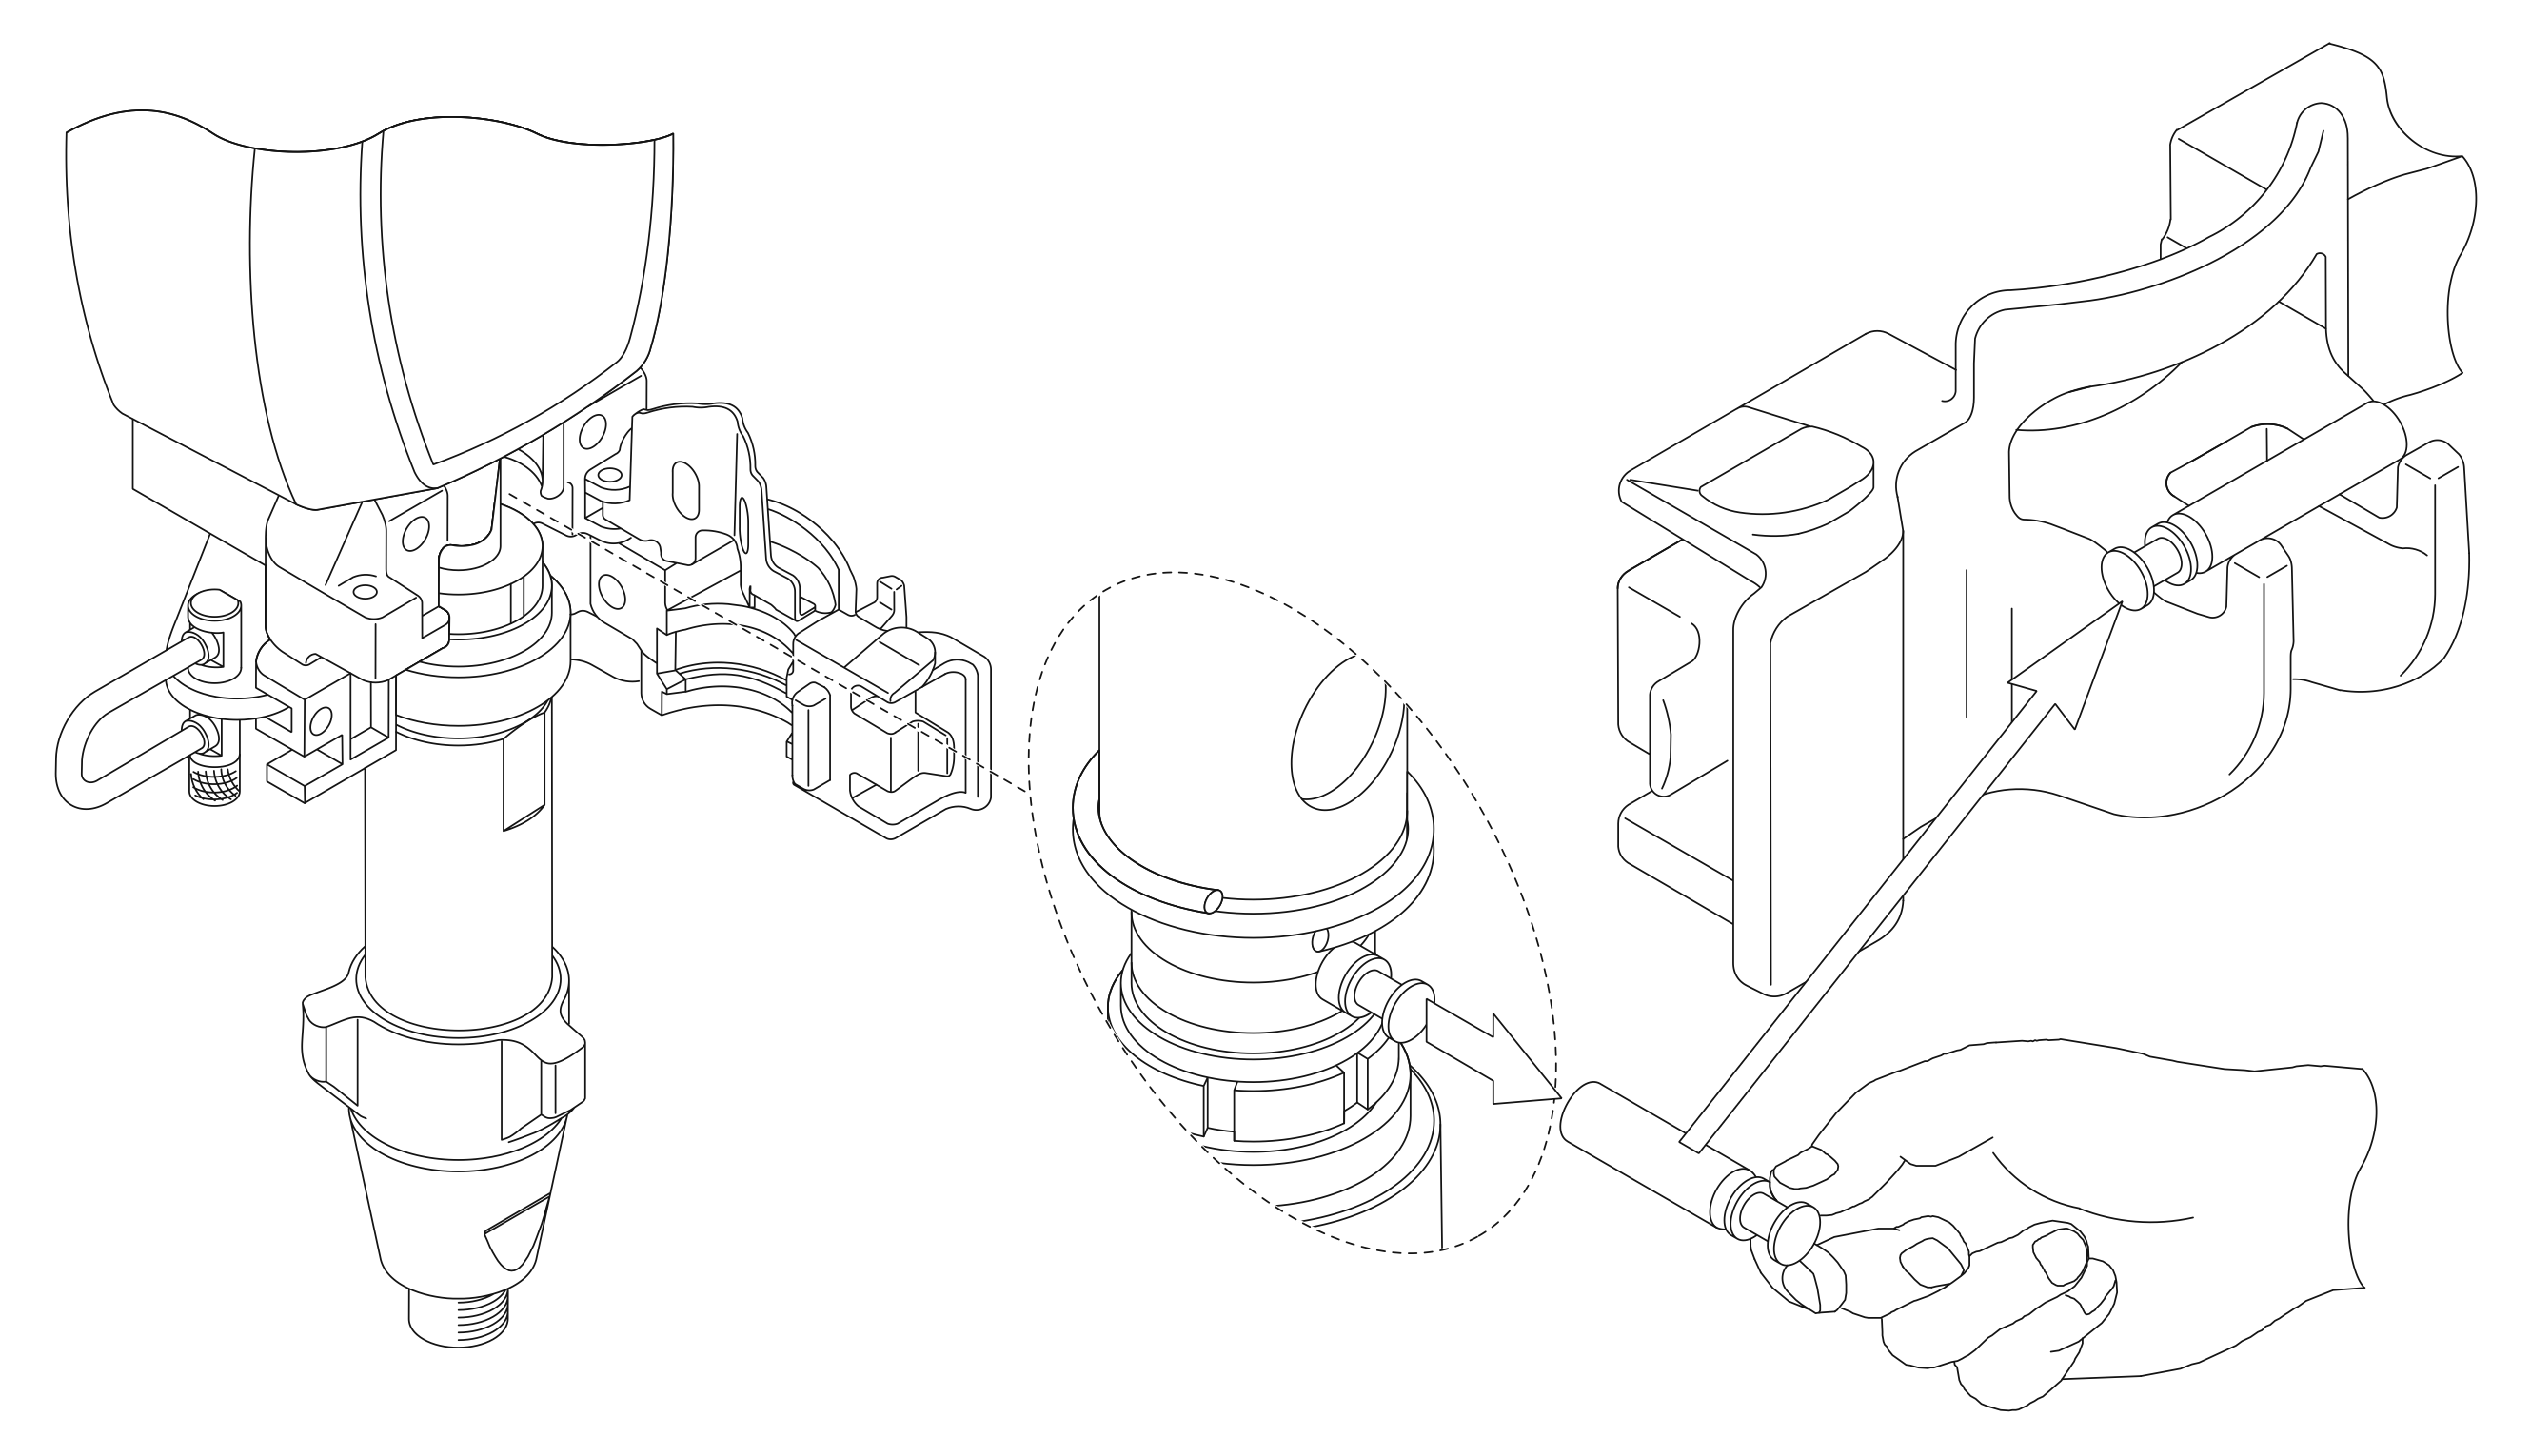 26_ptiserviceco_patent_drawing_mechanical.png